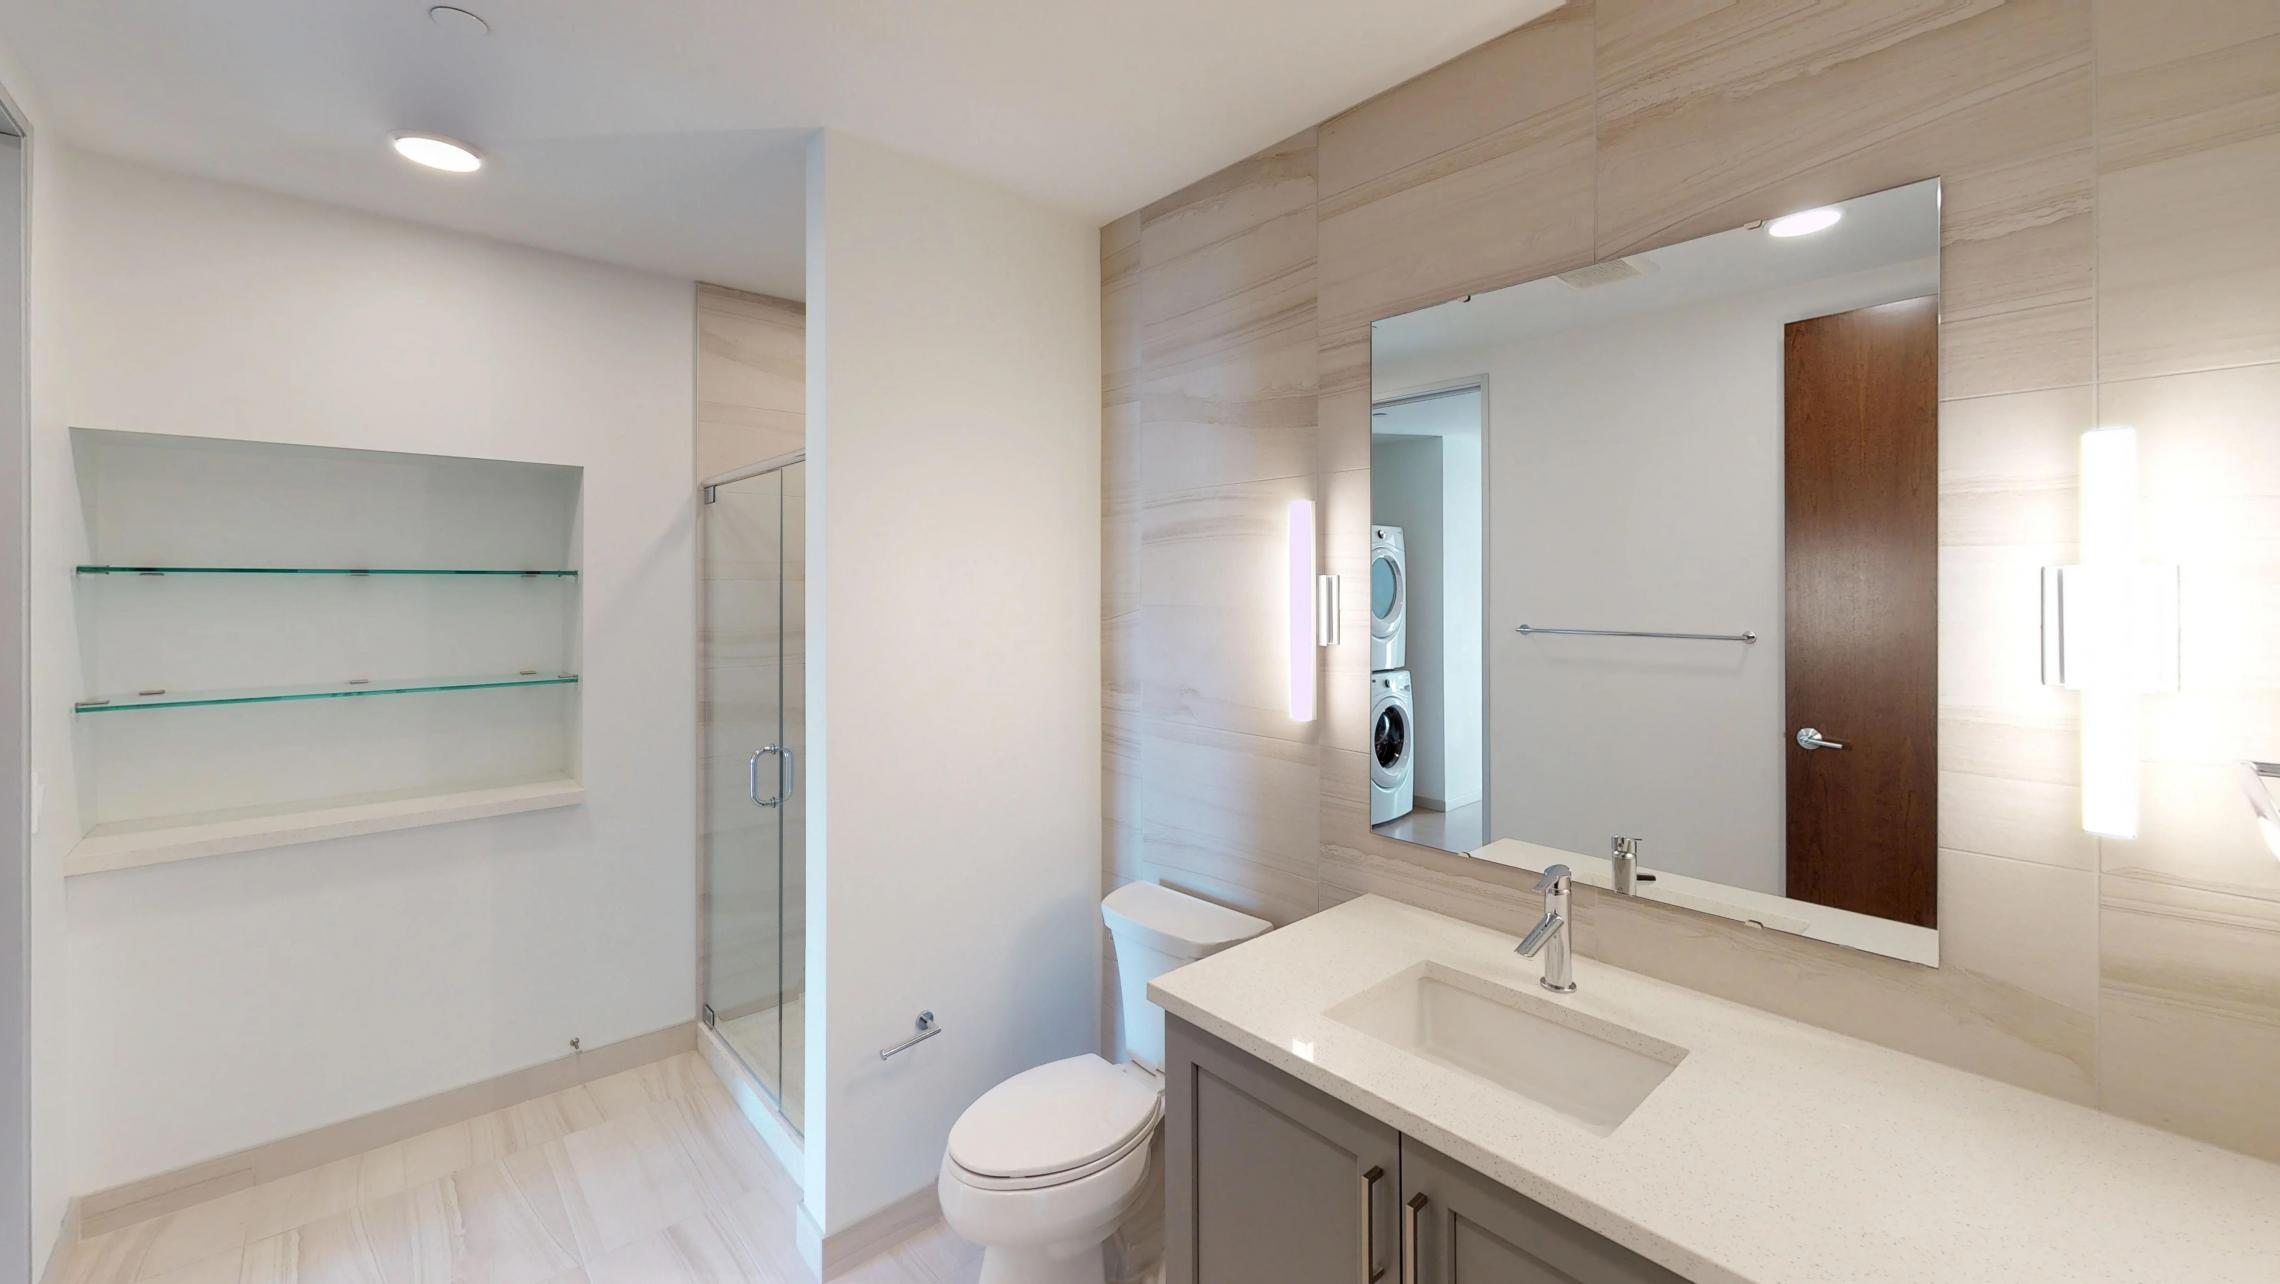 Pressman-Apartment-504-One-Bedroom-Balcony-City-View-Luxury-Downtown-Upscale-Modern-Downtown-Madison-Capitol-Square-Living-Room-Kitchen.jpg